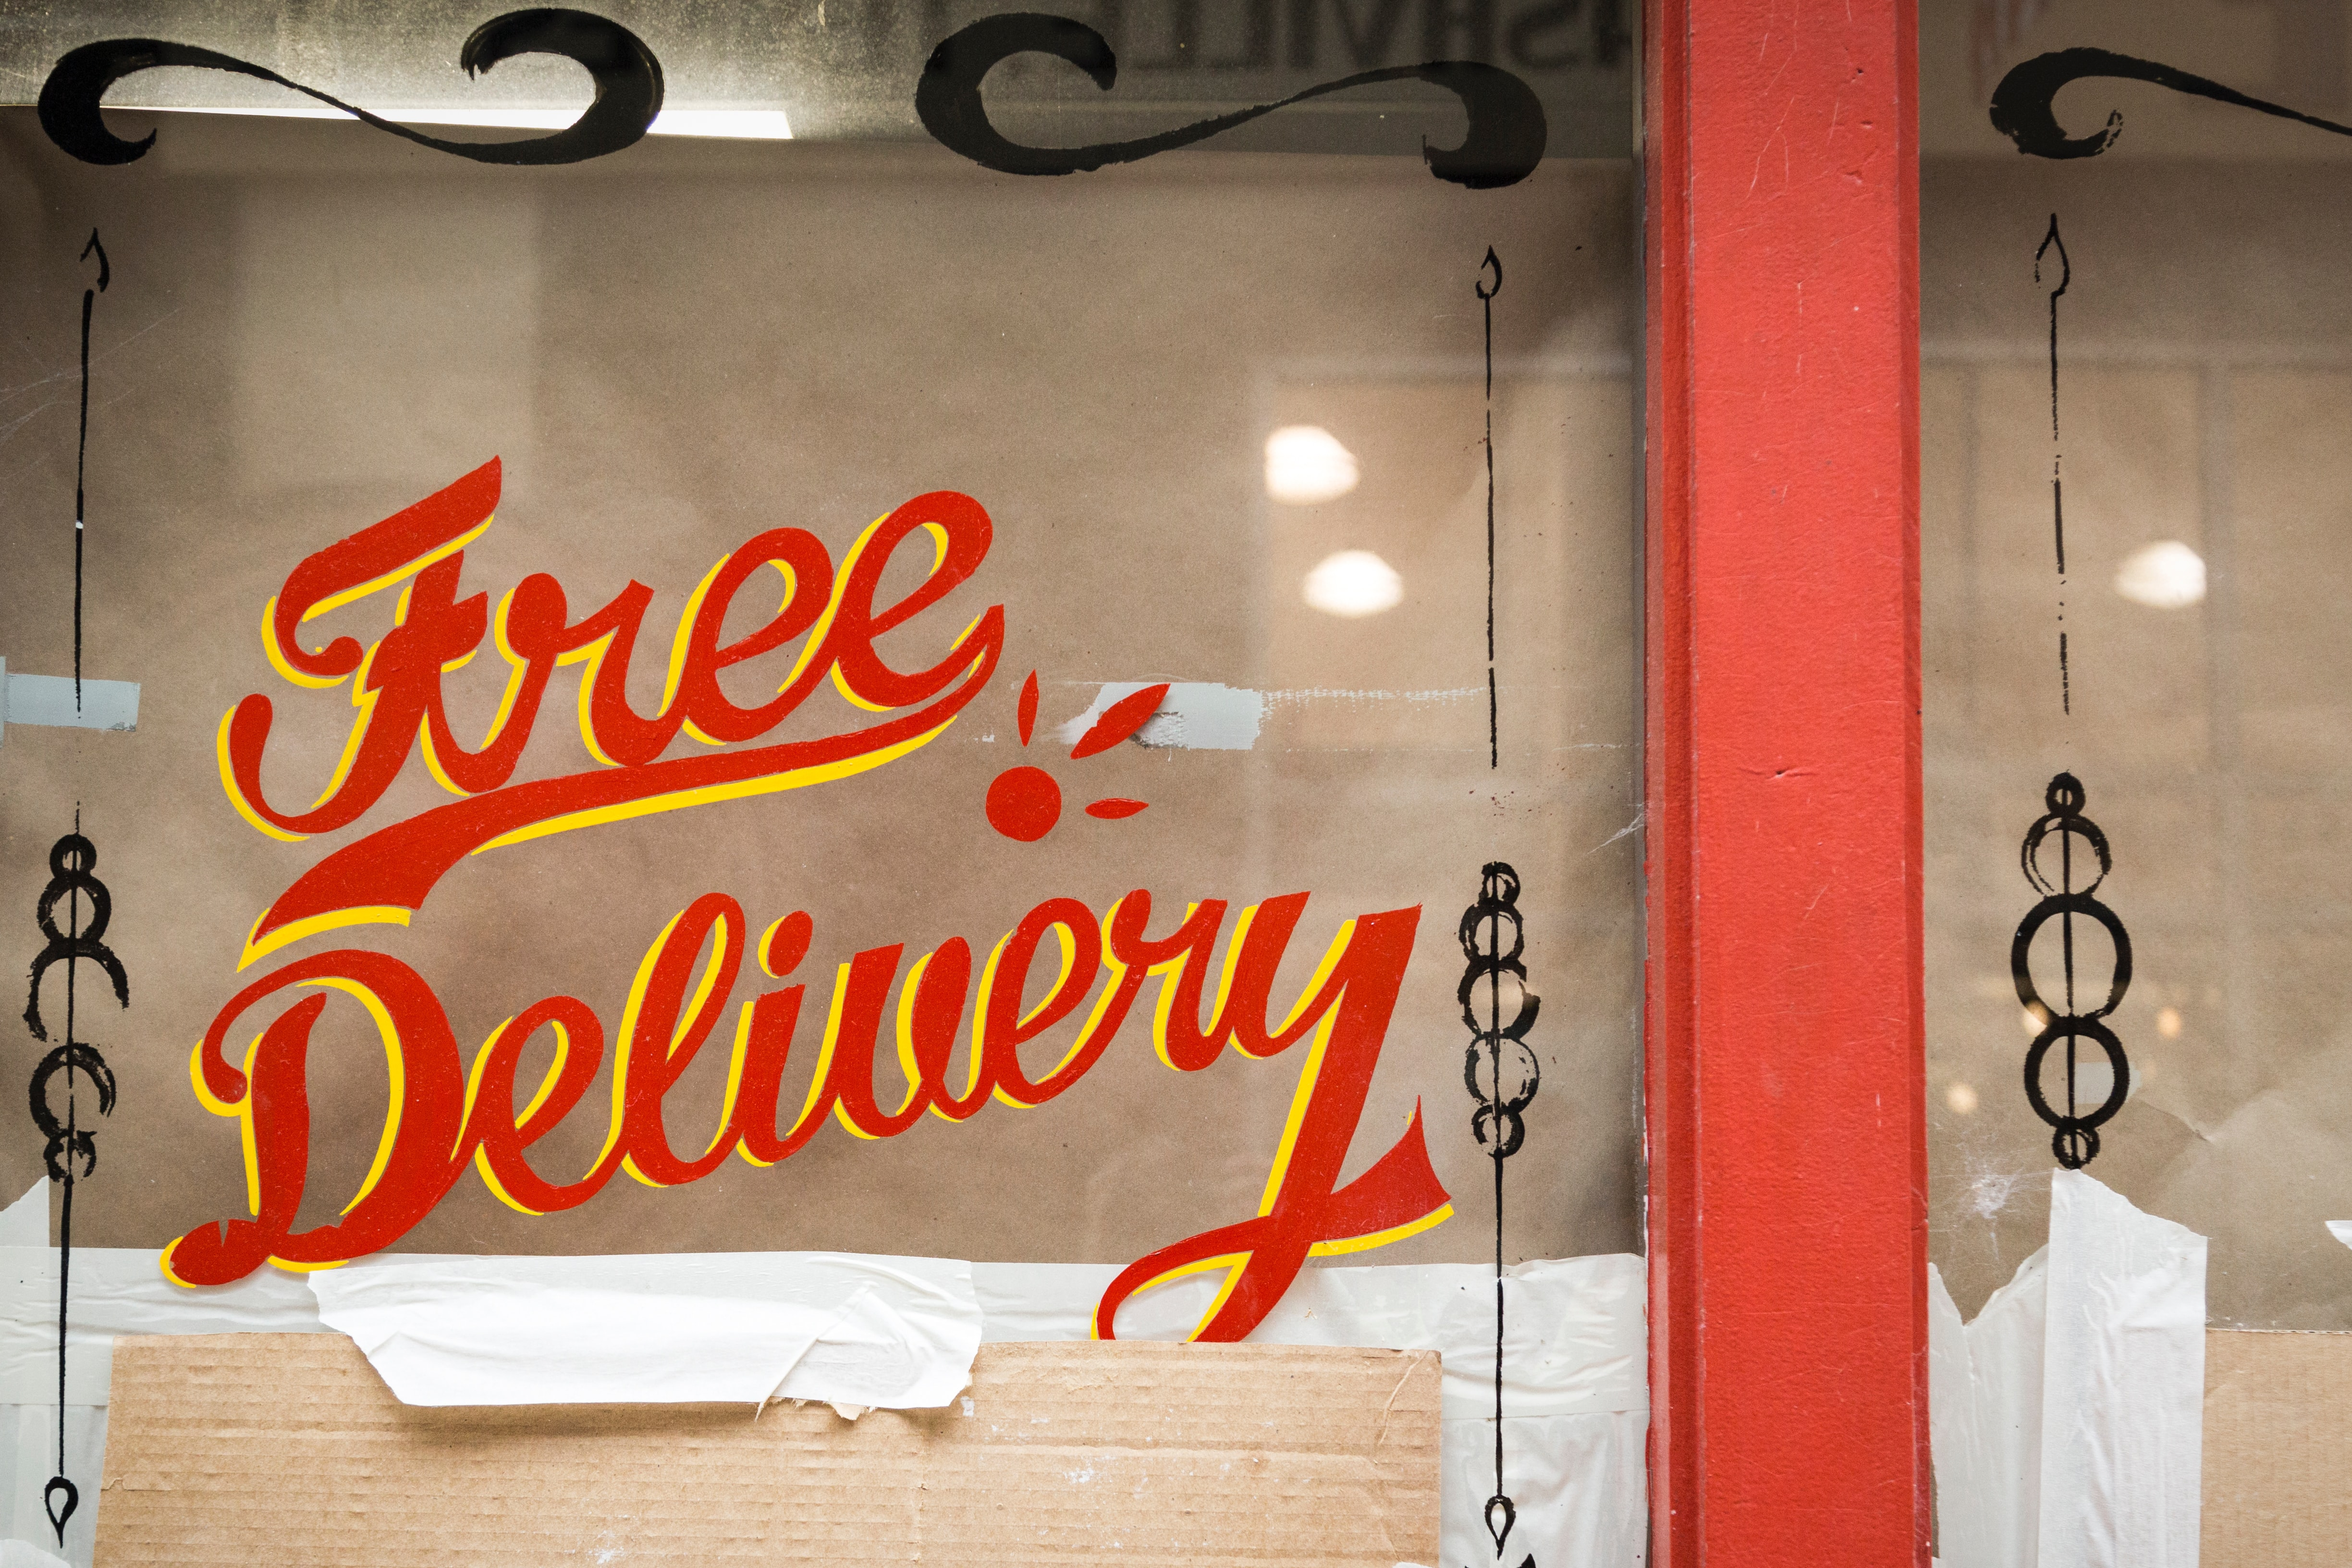 How Your Restaurant Can Serve Customers Via Takeout and Delivery